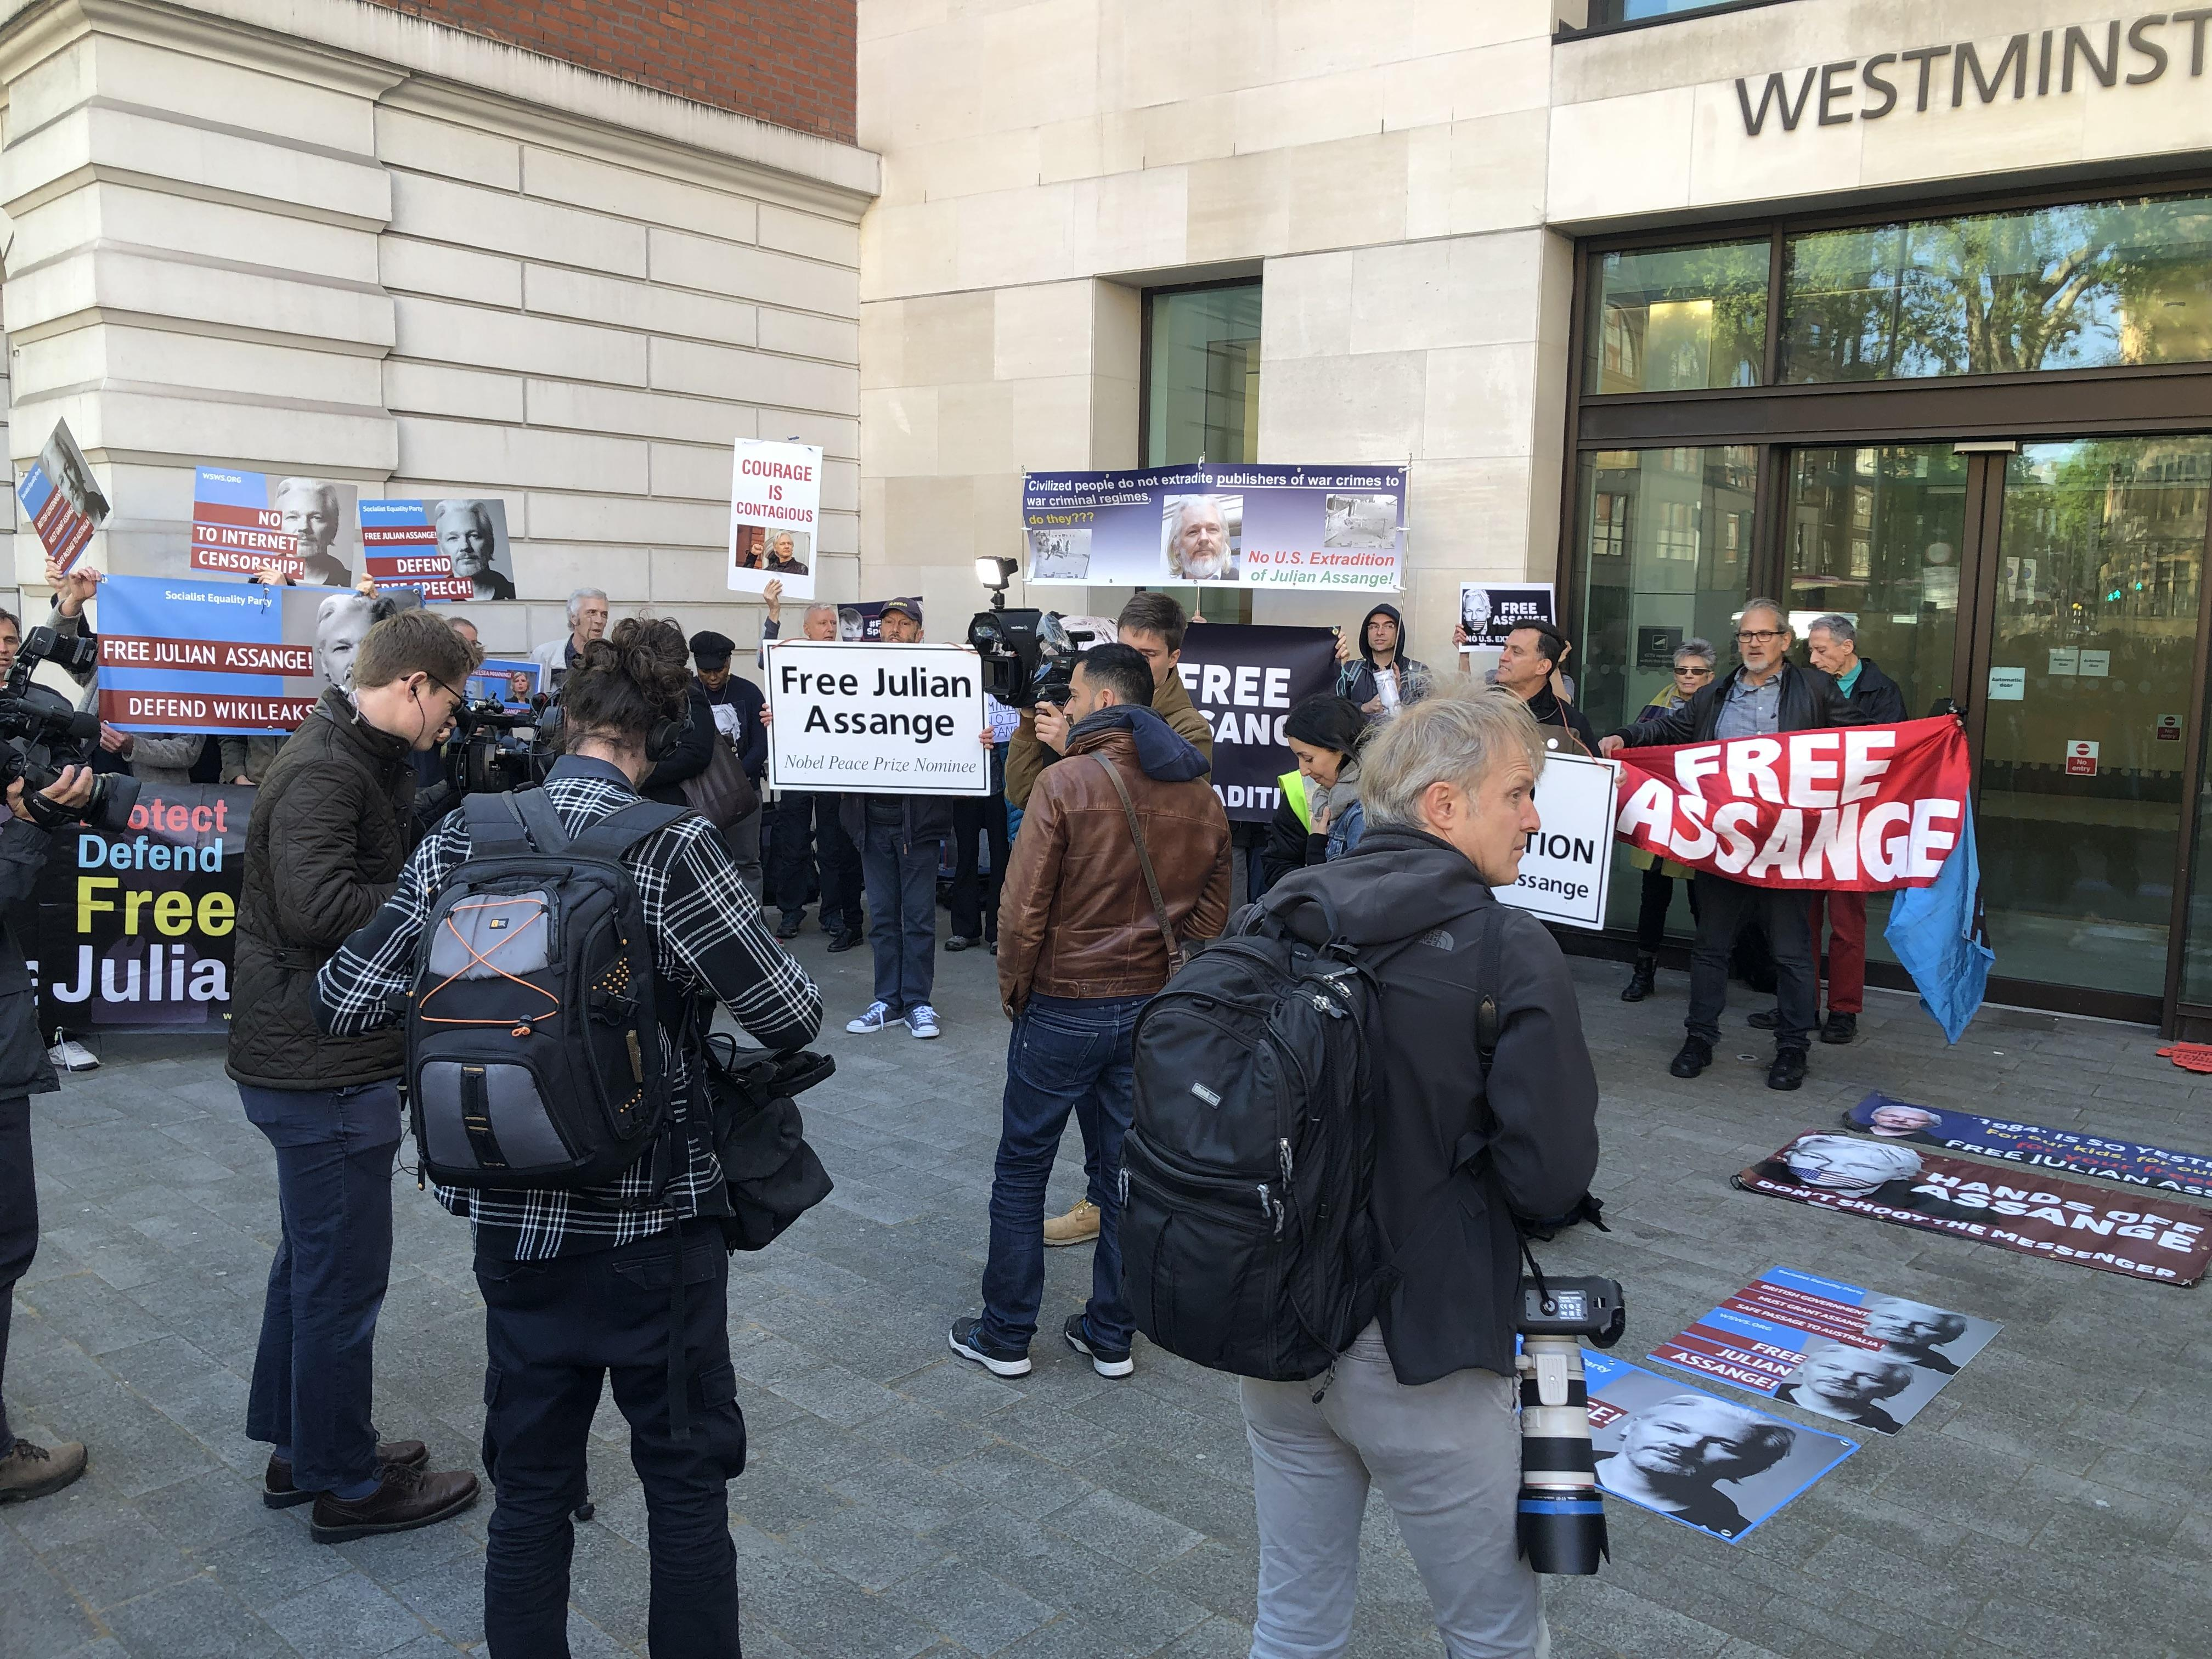 """Protesters outside Westminster Magistrates Court in London, holding signs saying """"Free Julian Assange."""""""